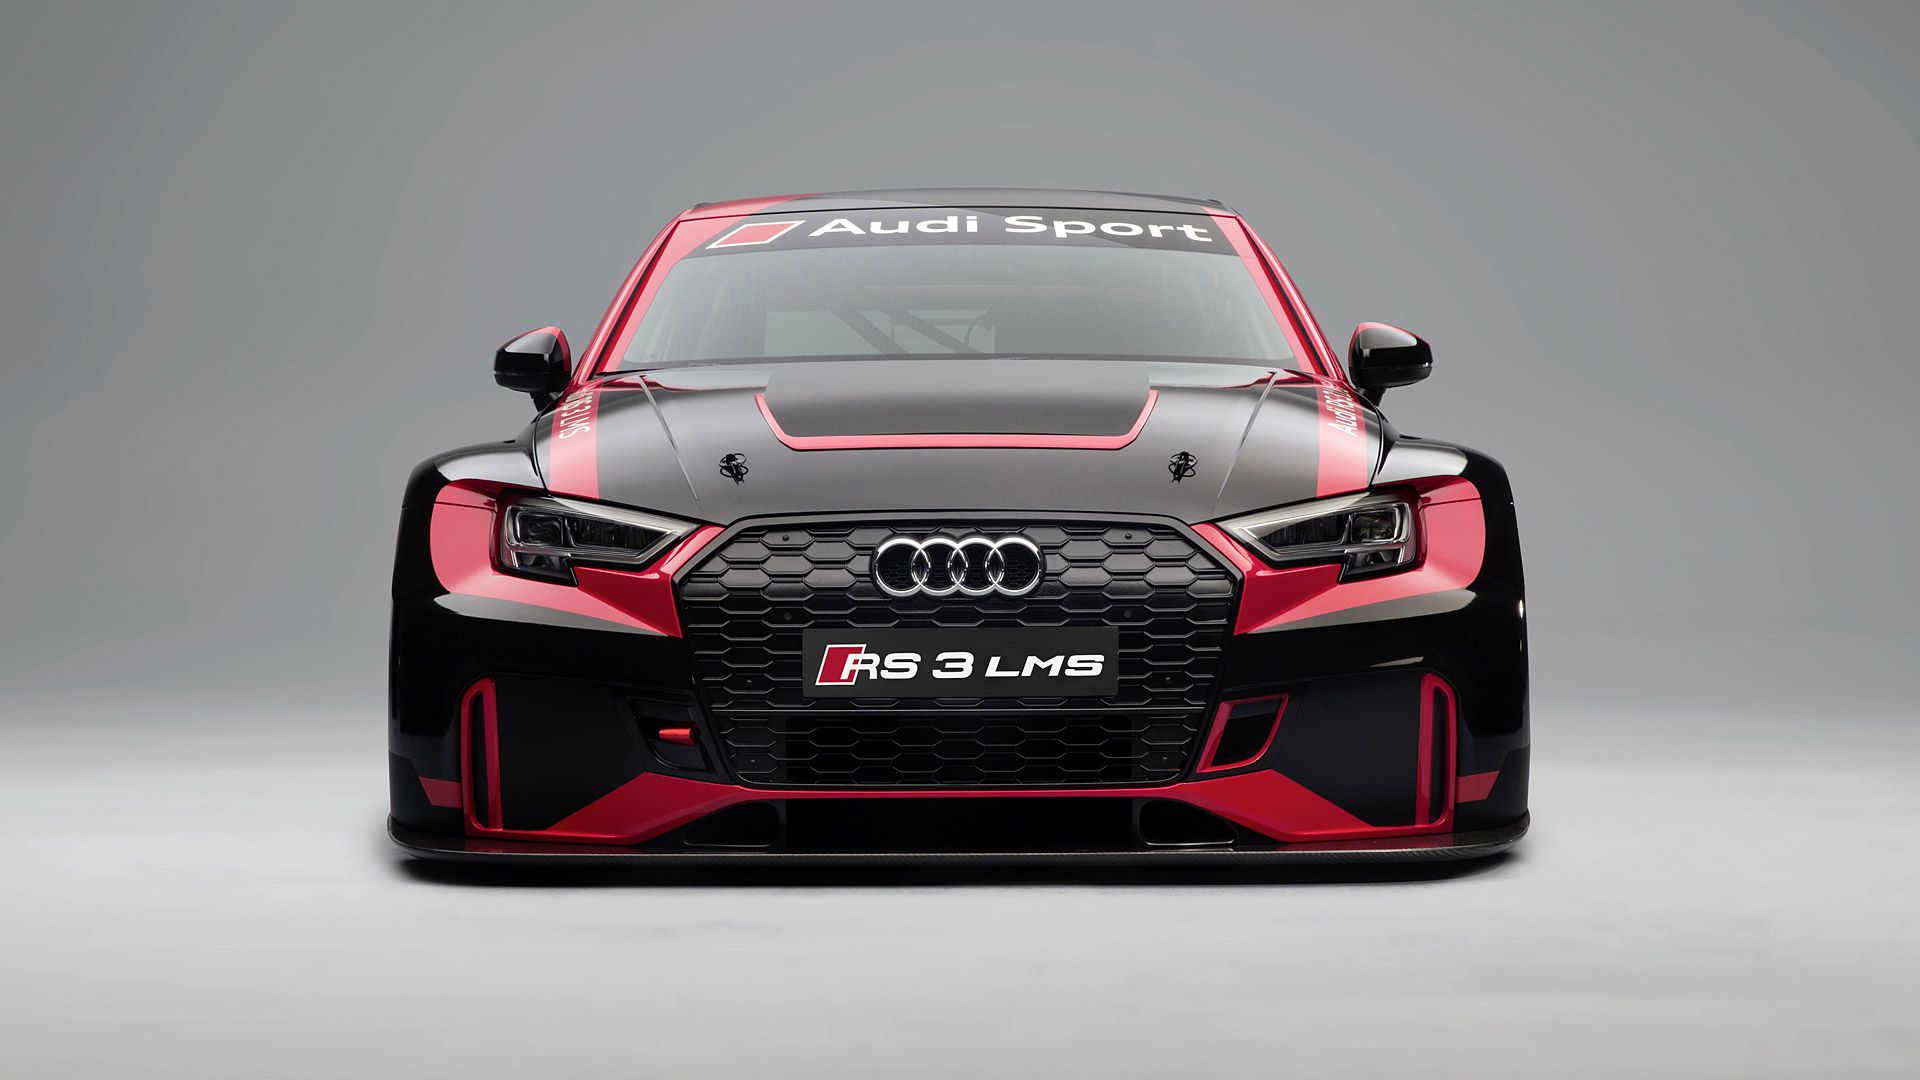 2017 Audi RS3 LMS Wallpapers & HD Image